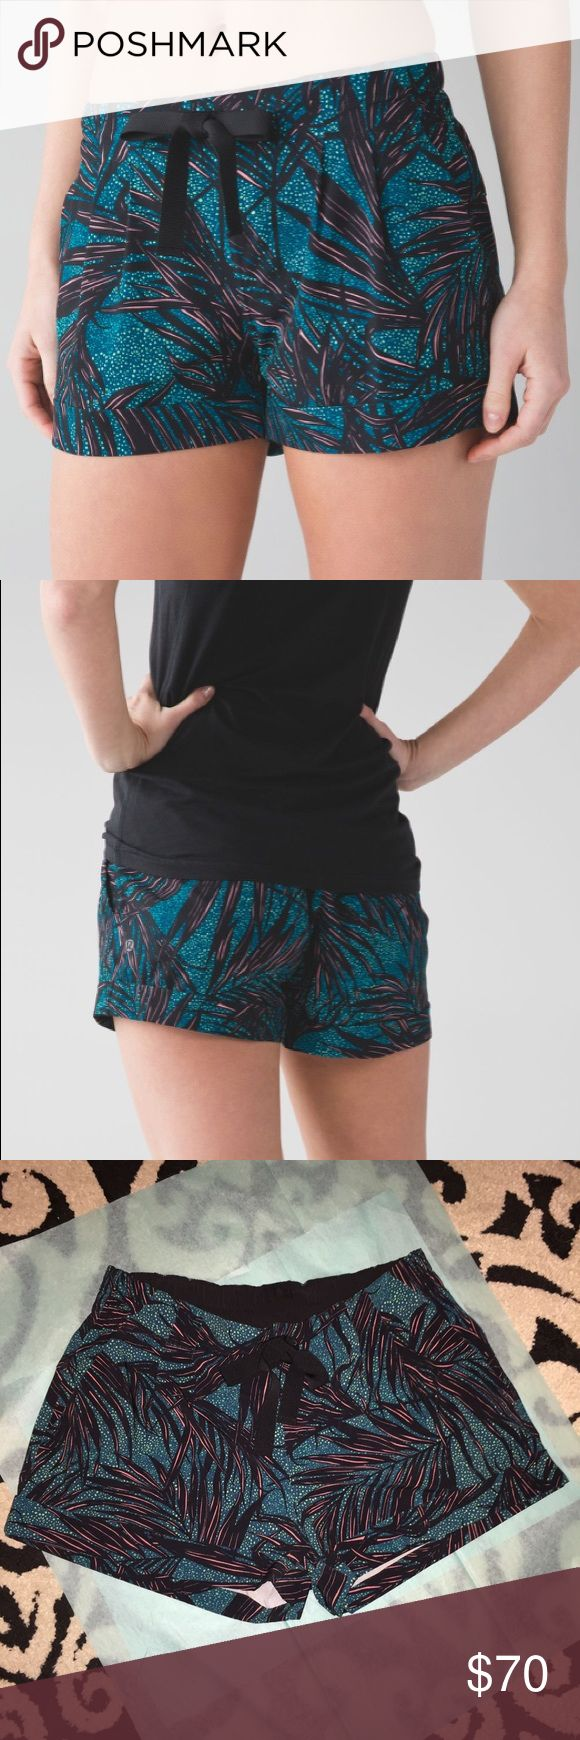 Lululemon spring break away shorts Perfect condition!! Size 8, palm lace teal. Super cute!! Rare pattern now! lululemon athletica Shorts